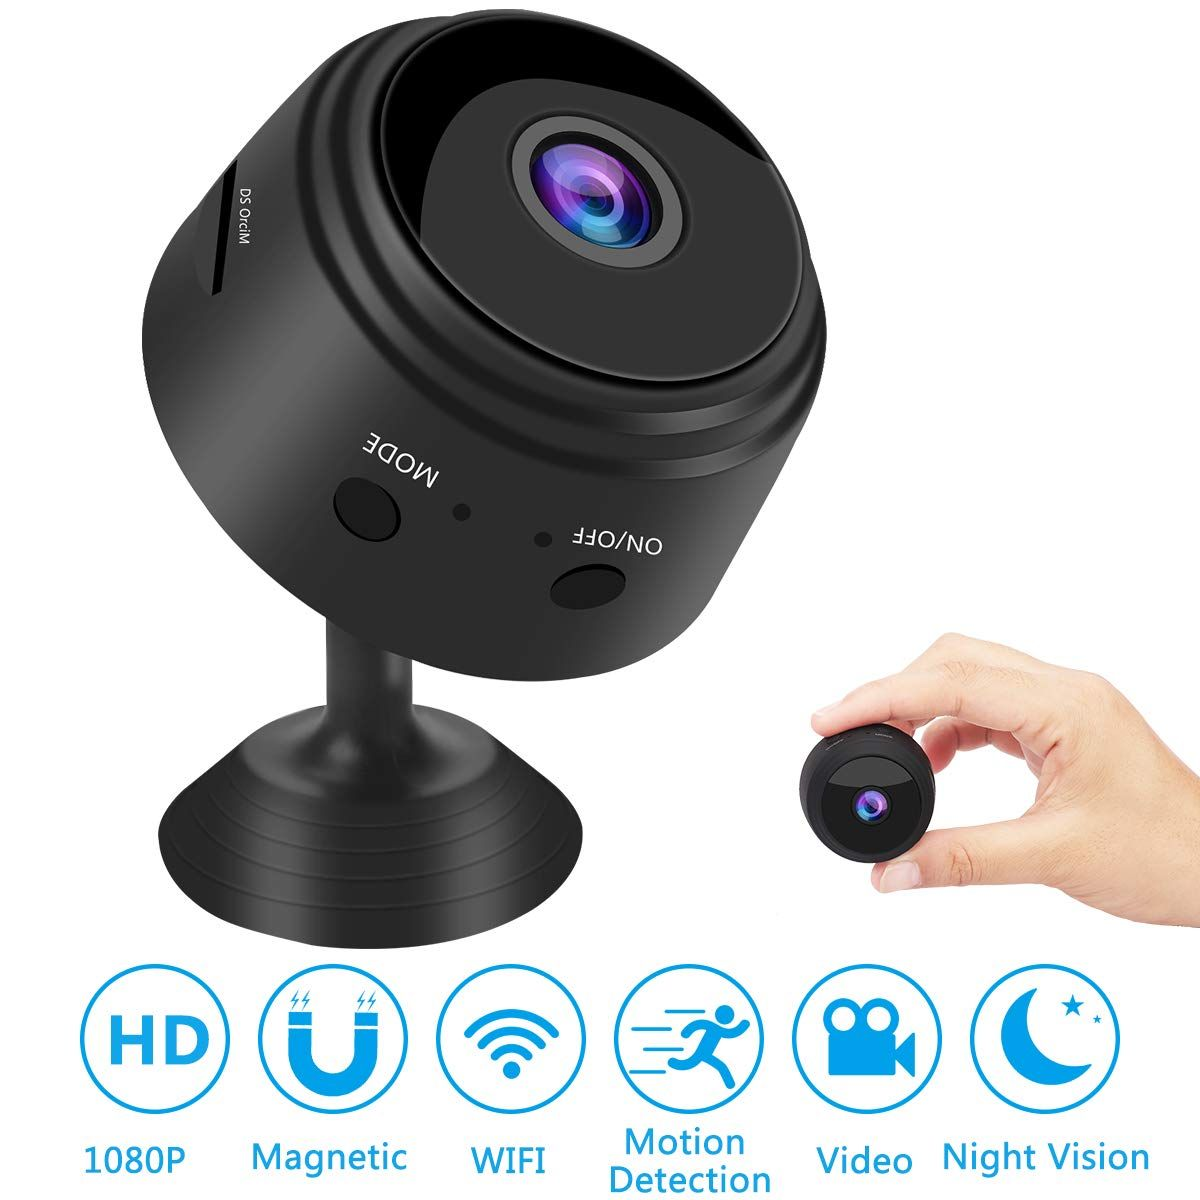 Mini Spy Camera Wireless Hidden WiFi Camera, HD 1080P